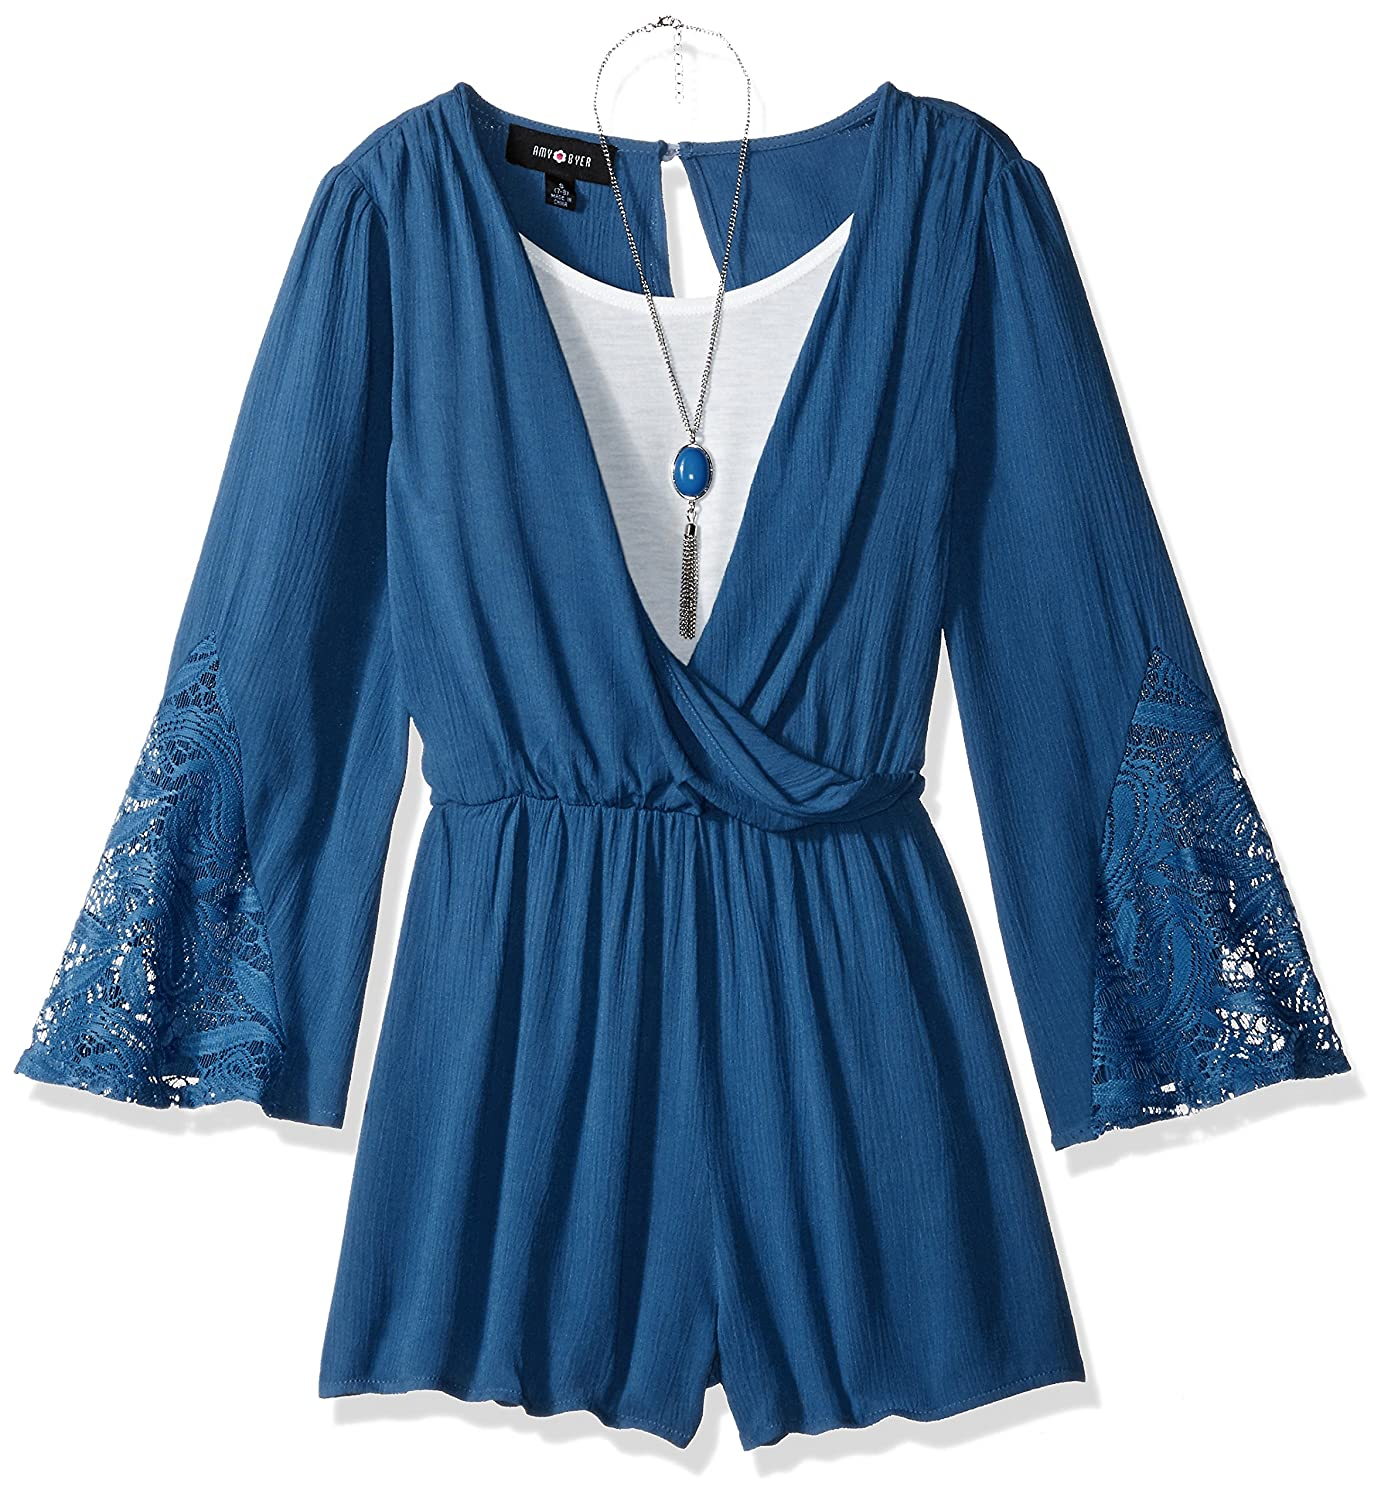 de3595b59caa Amy Byer Big Girls  Bell Sleeve Romper With Lace Trim